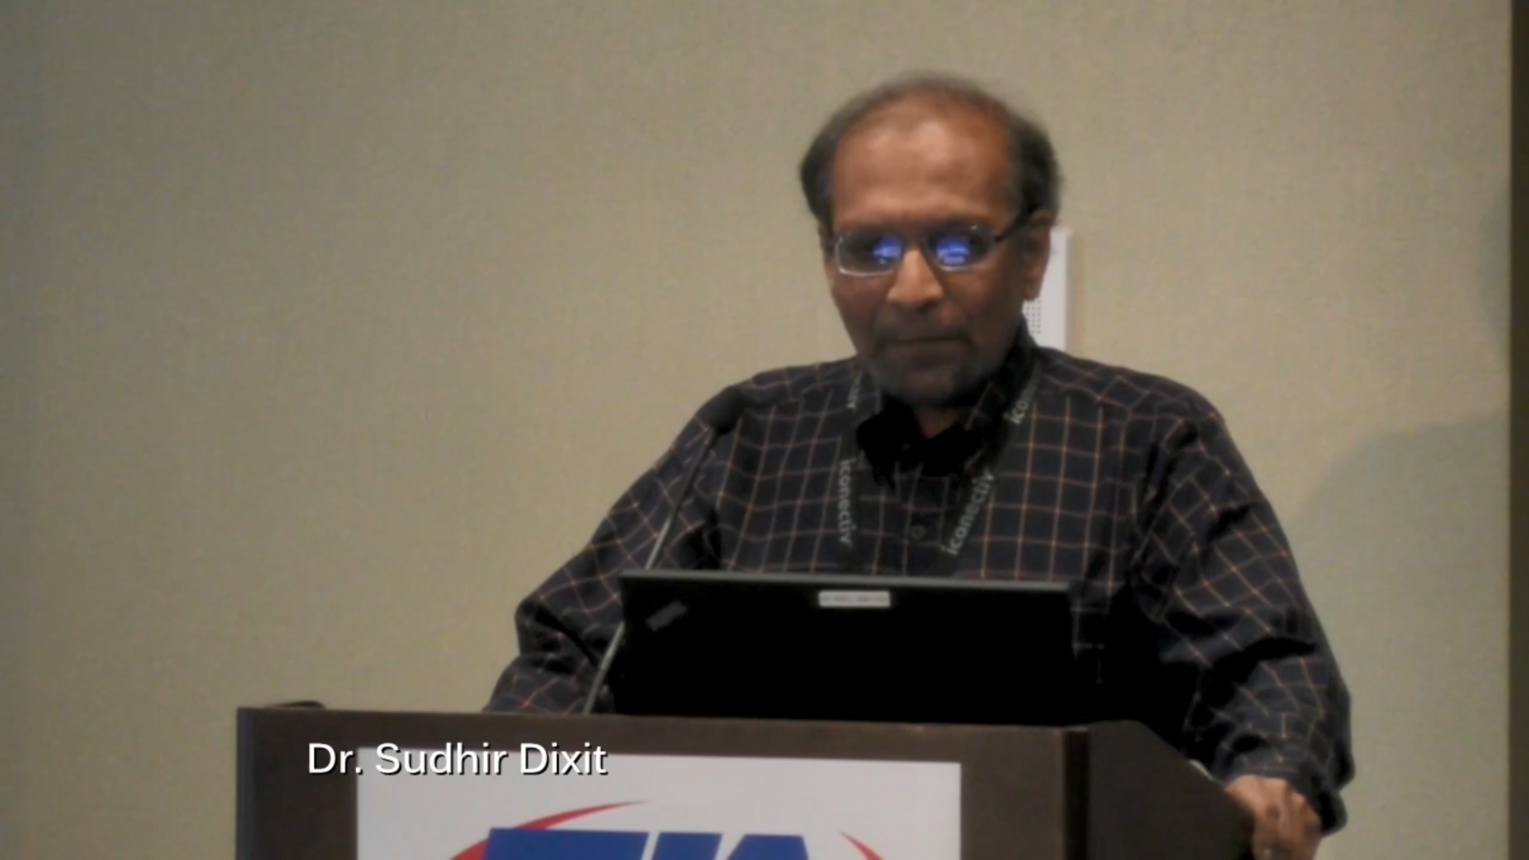 WWRF - (B5G) Systems: Expectations, Realities and Disruptions - Dr. Sudhir Dixit, Fellow and Evangelist, Basic Internet Foundation & Board Member WWRF